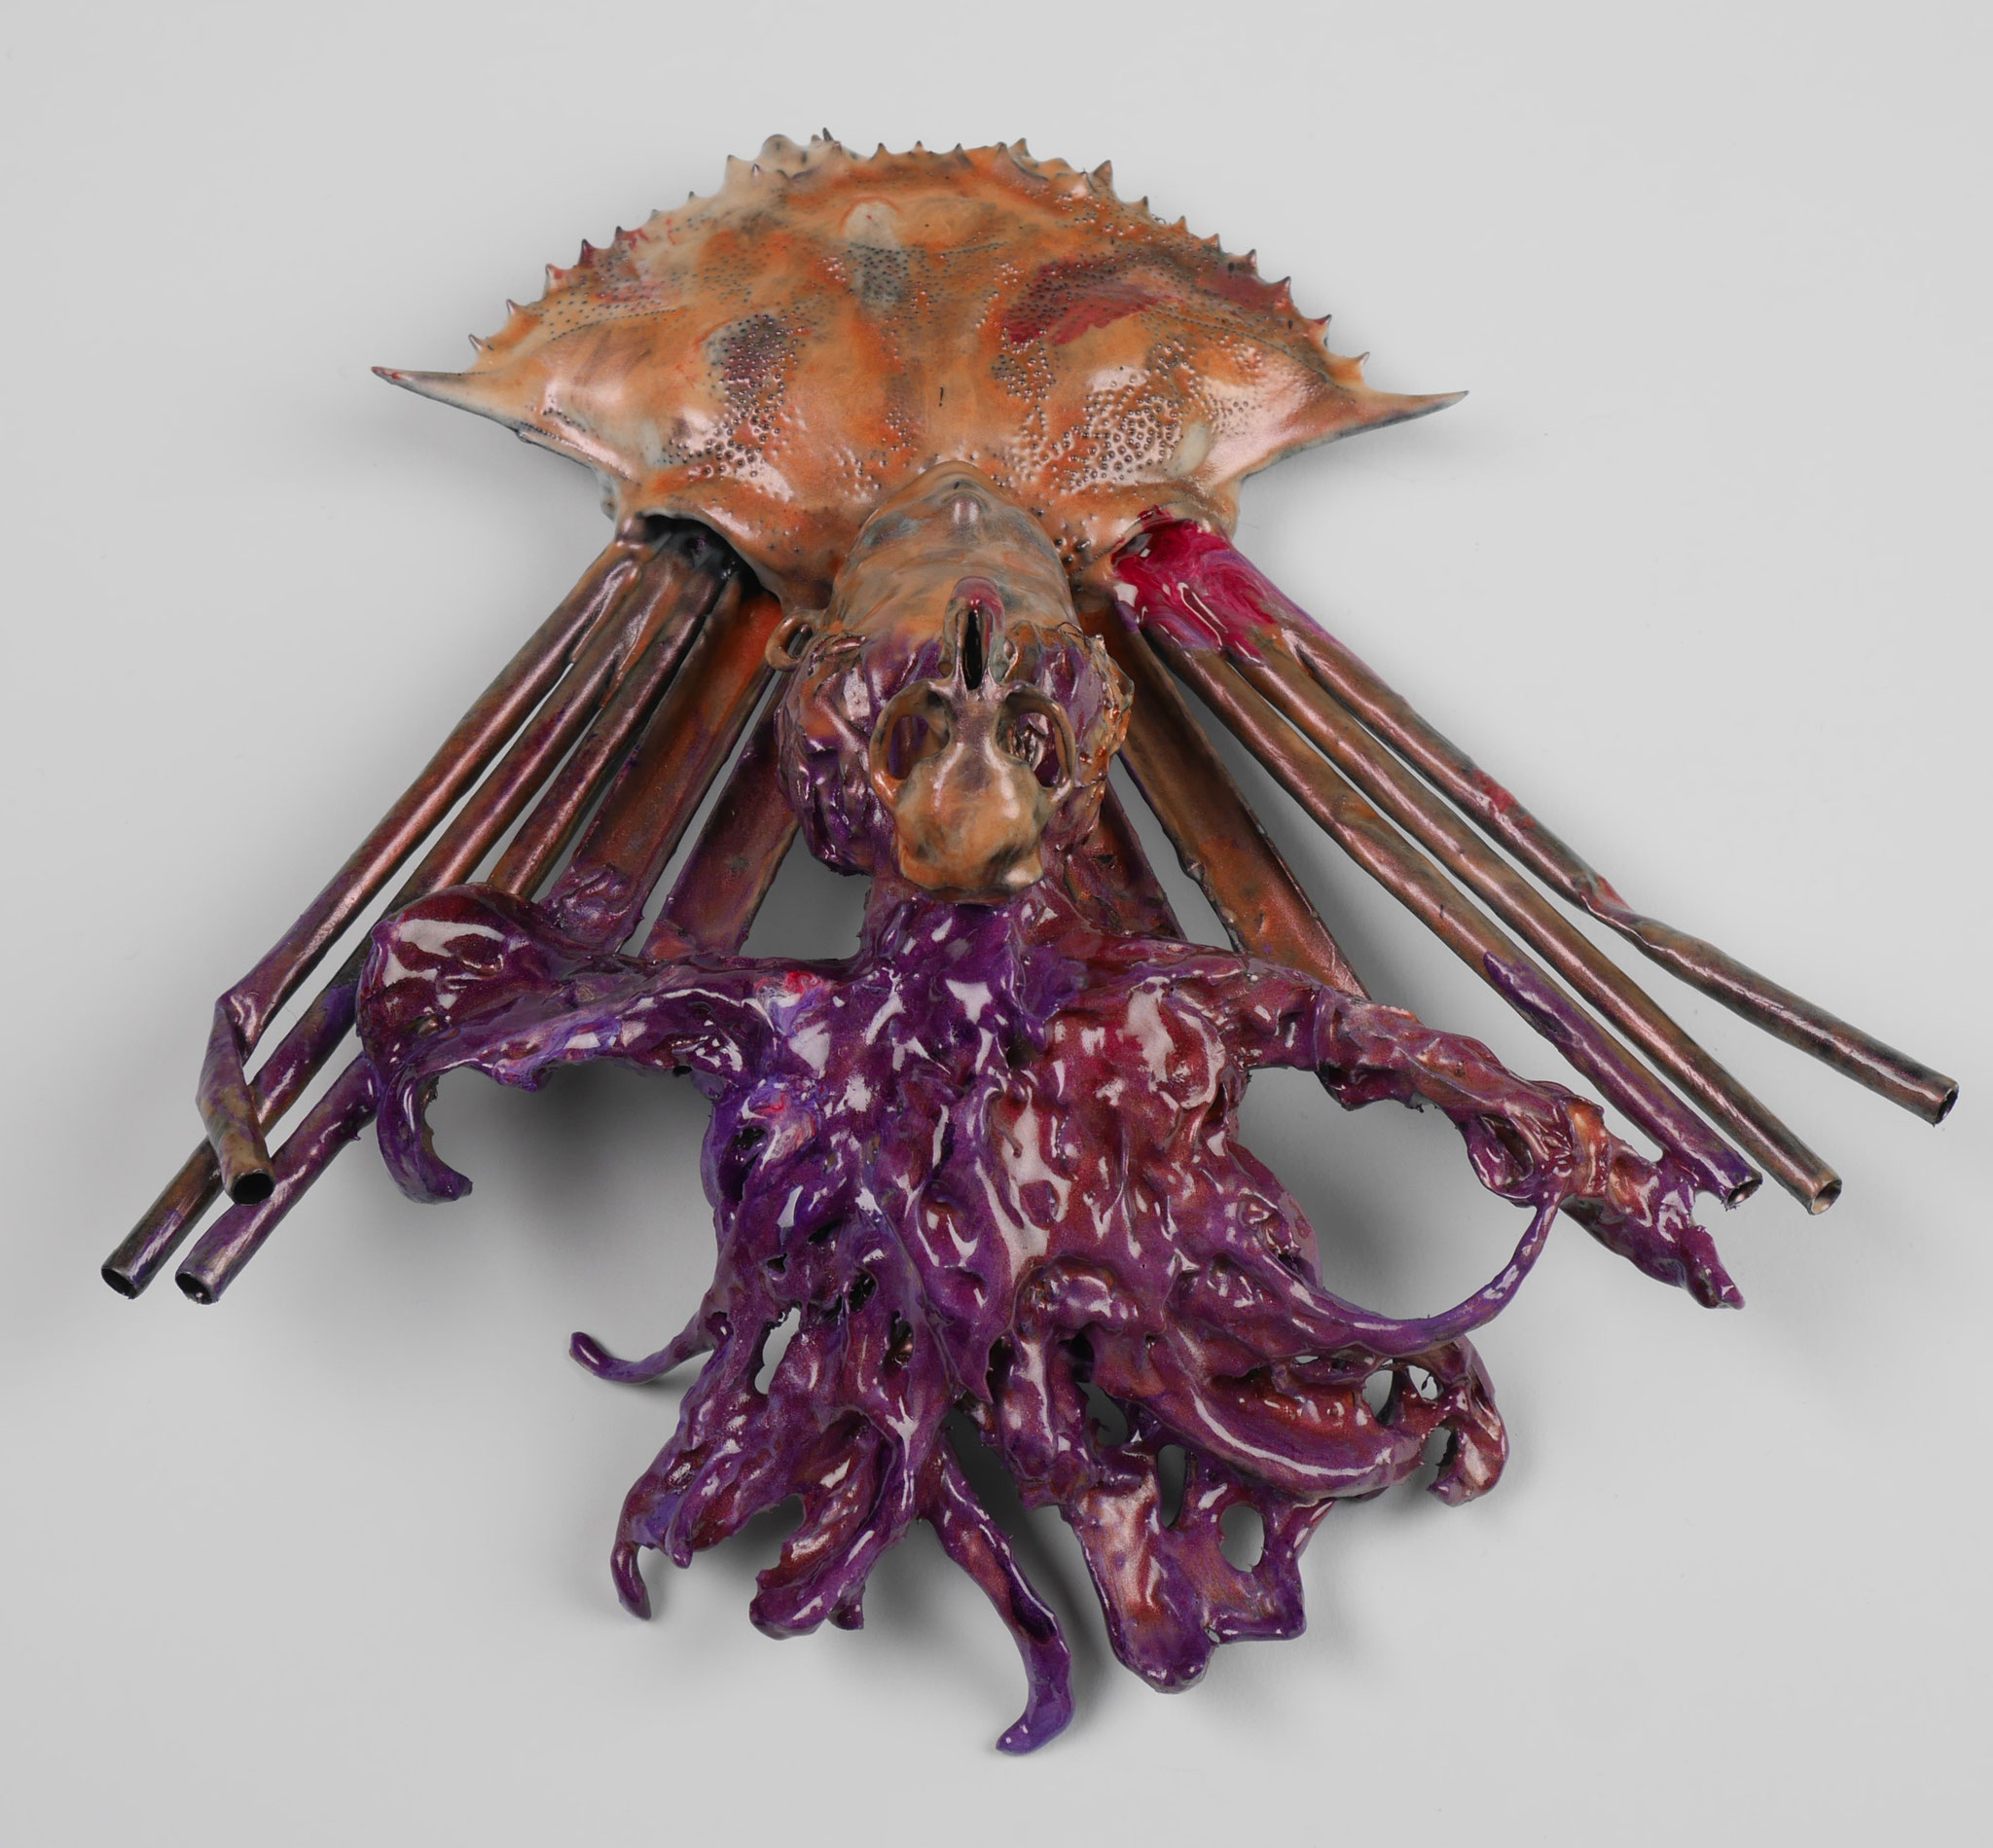 #13, 2016, crayfish carapace, plastic toys, straws and a rat scull coated with epoxy resin, 19,5x20,5x65cm